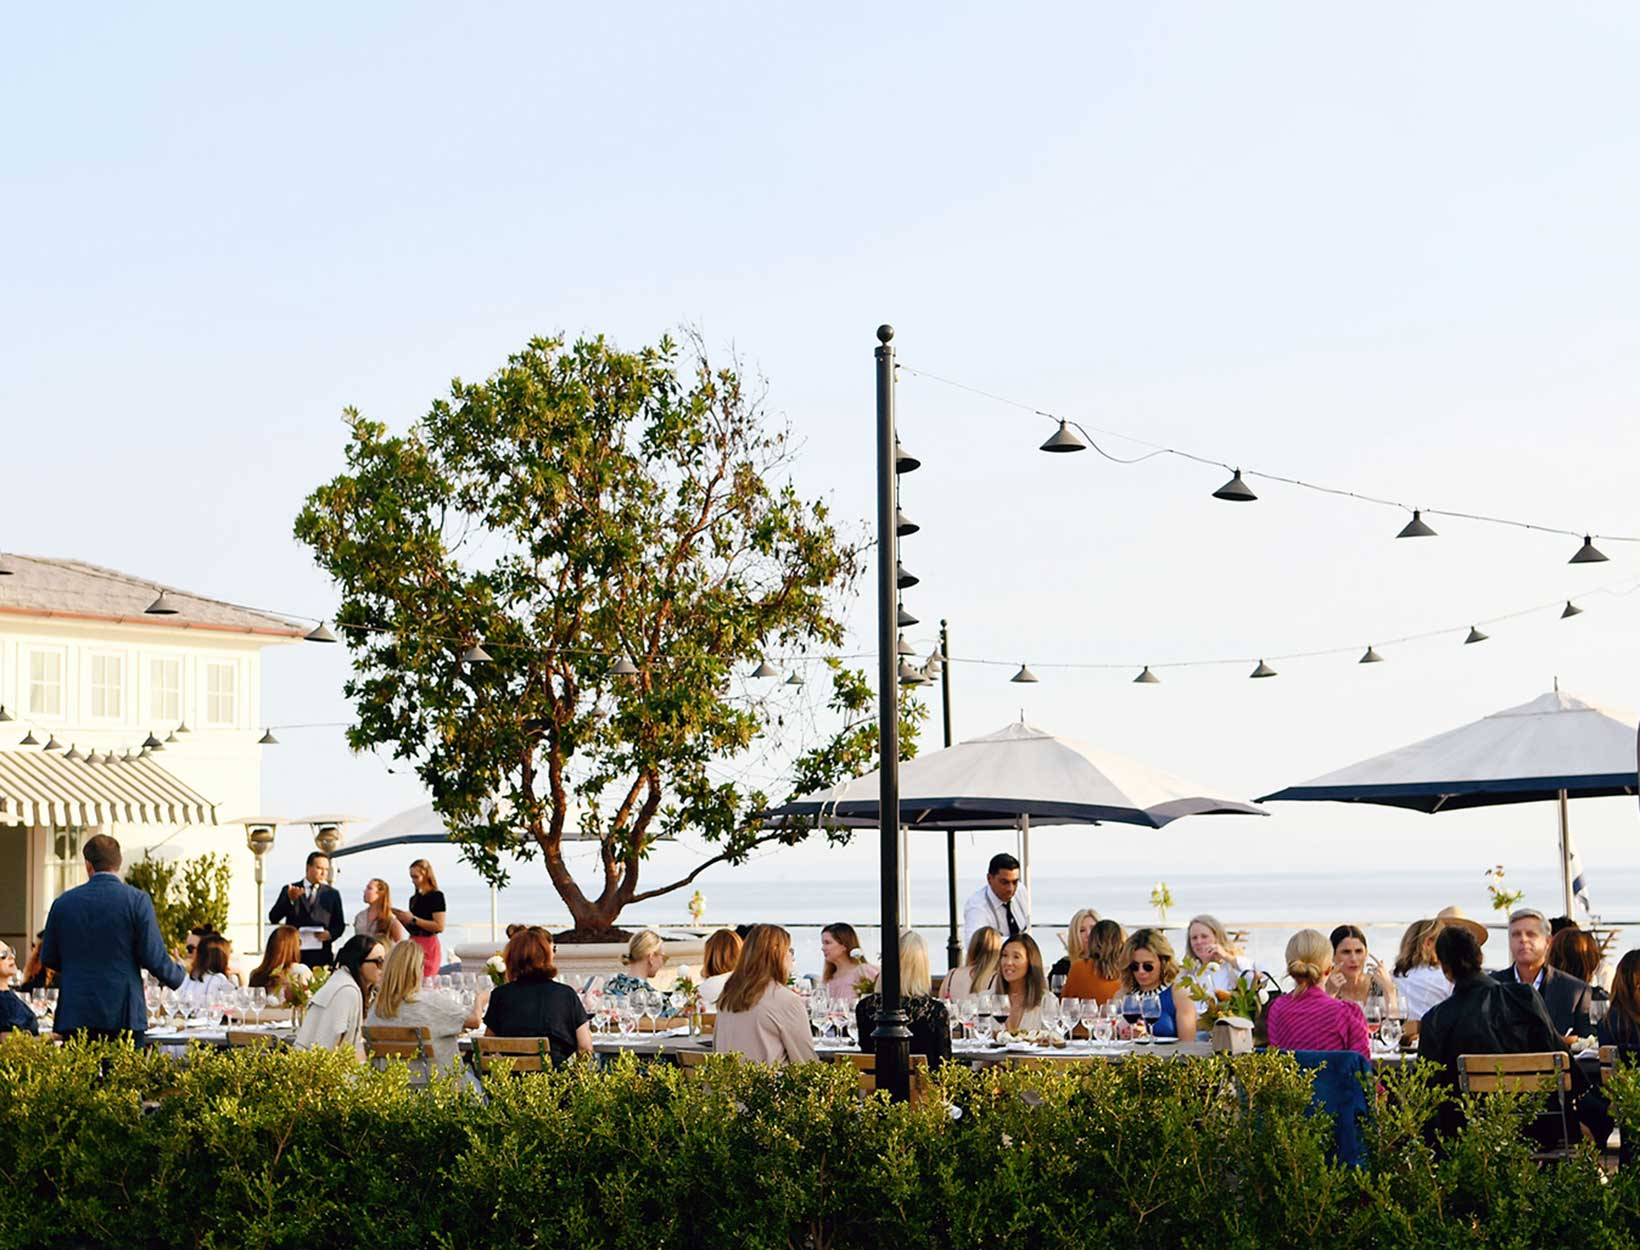 goop by the Beach: A Coastal California Road Trip and Dinner Party